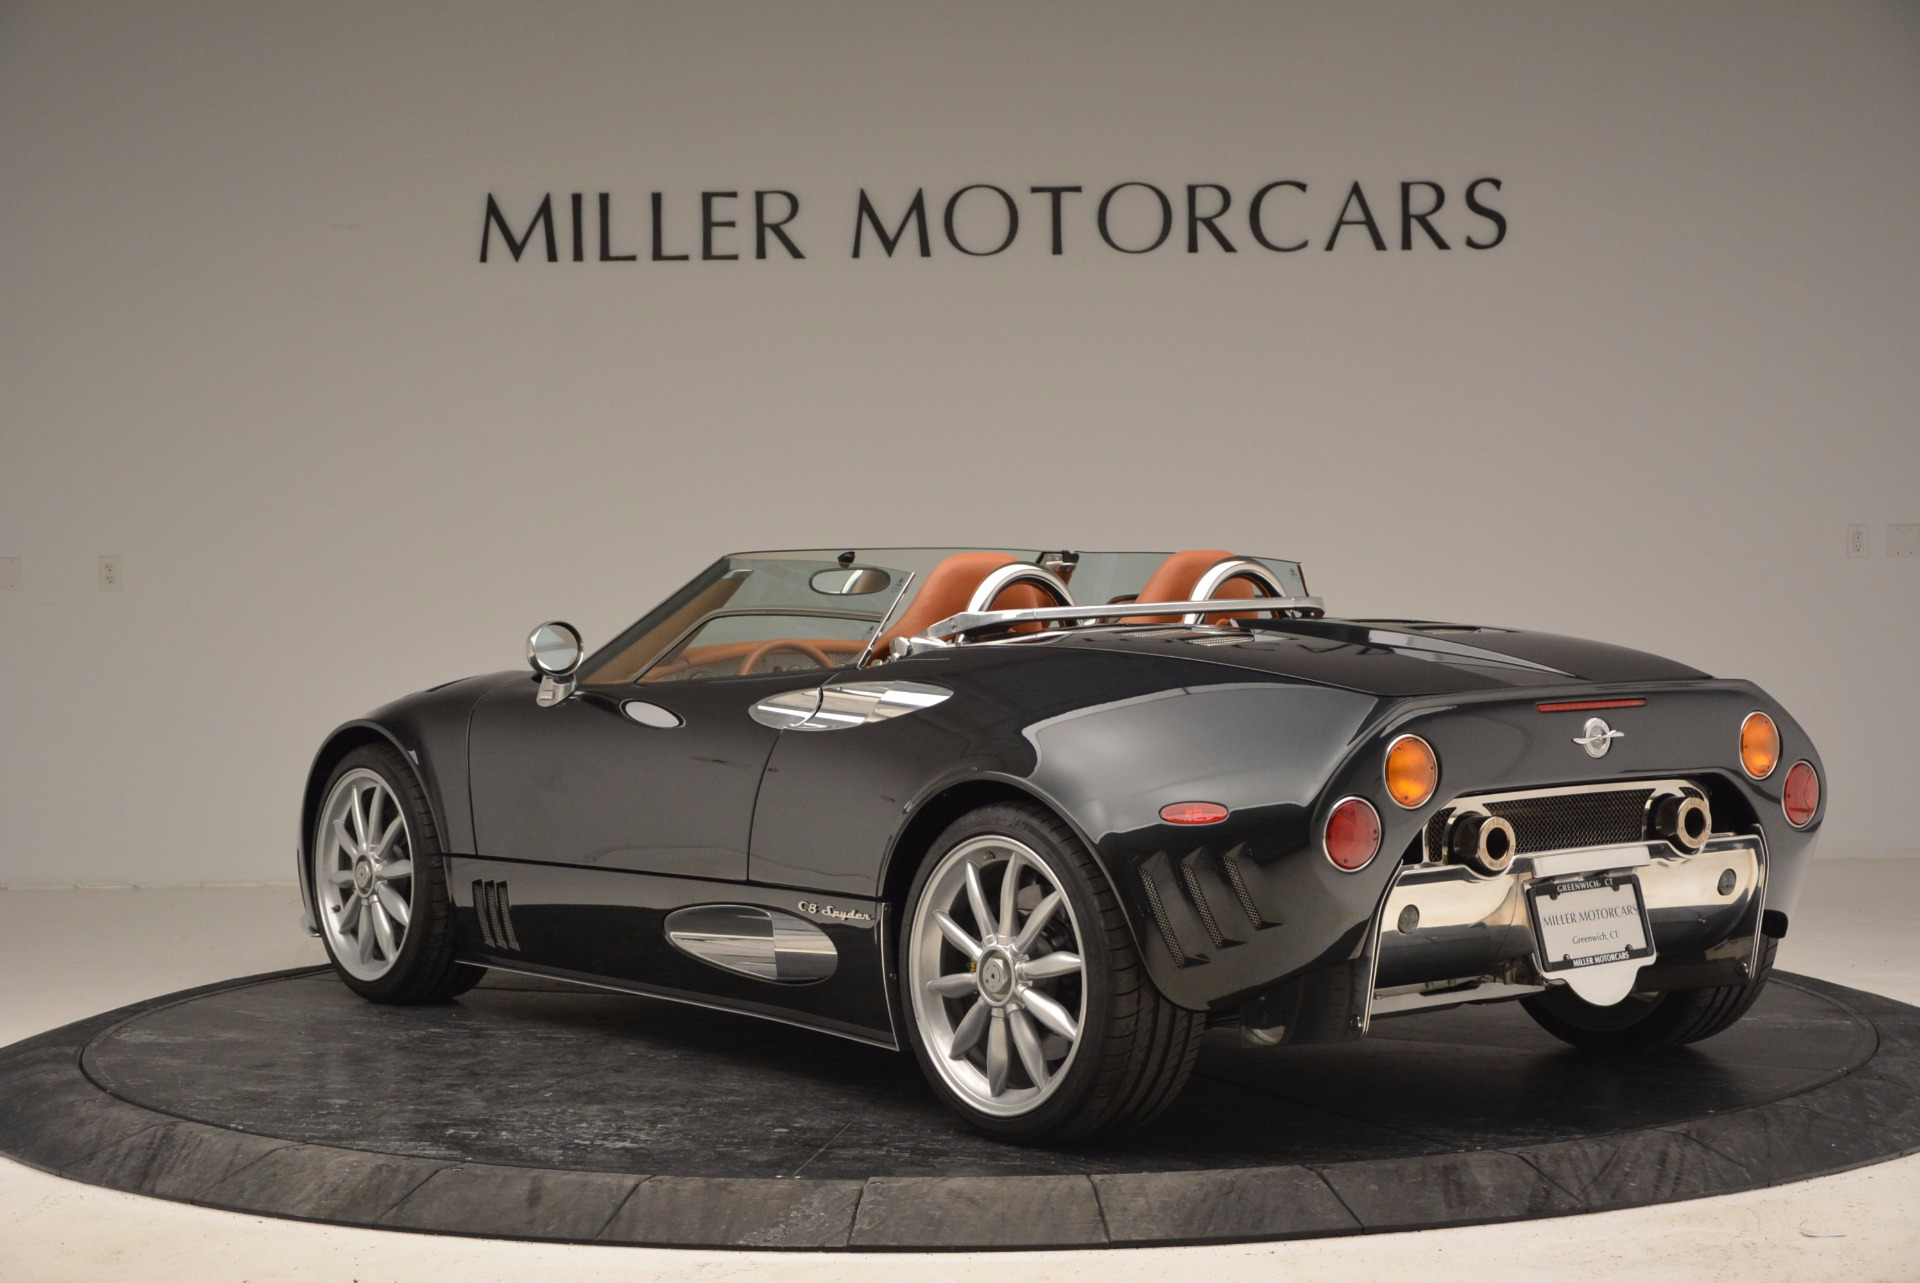 Used 2006 Spyker C8 Spyder  For Sale In Greenwich, CT. Alfa Romeo of Greenwich, 7157 1007_p7